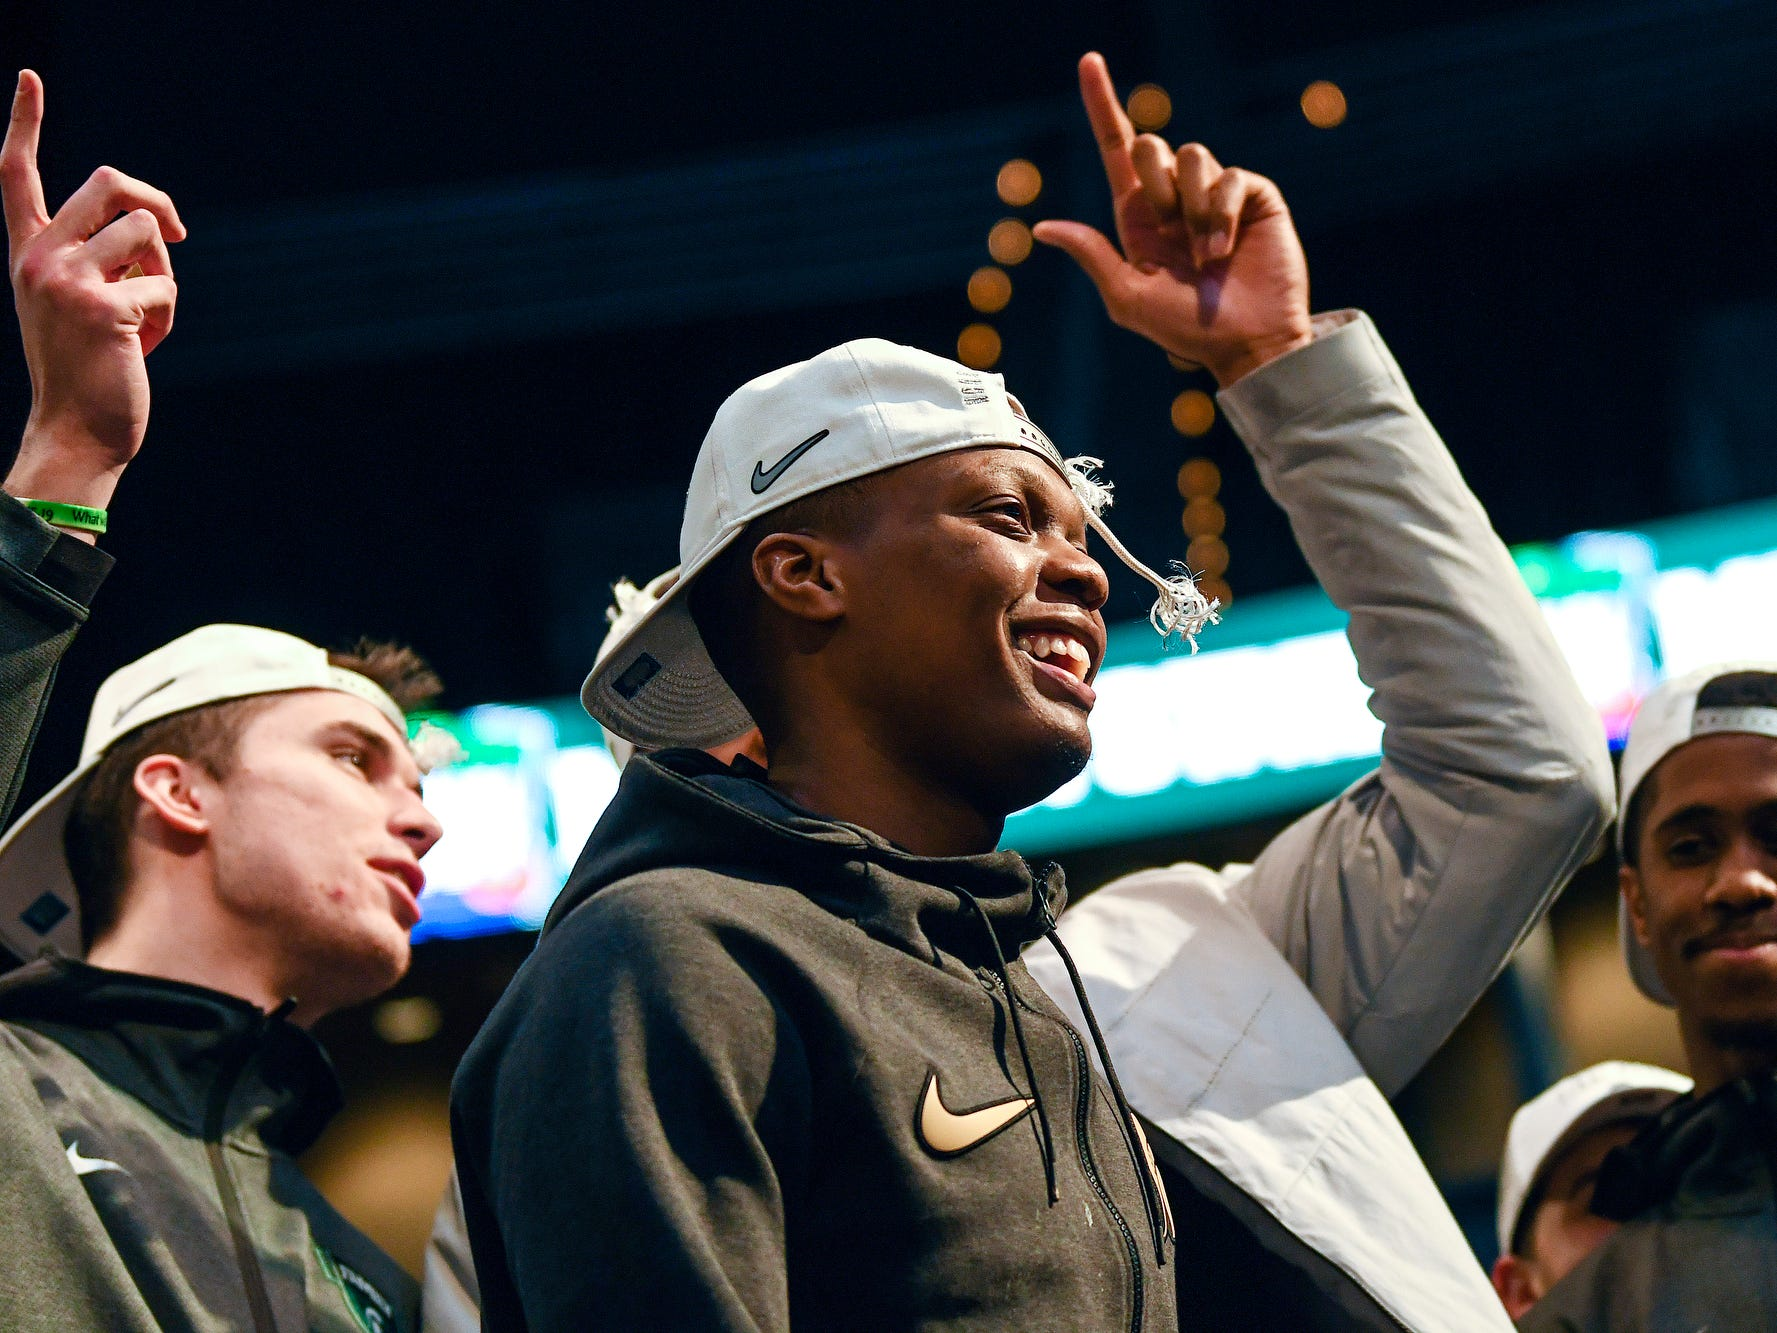 Michigan State's Cassius Winston smiles while addressing the crowd during a rally after MSU's victory over Duke on Sunday, March 31, 2019, at the Breslin Center in East Lansing. The Spartans beat Duke 68-67 to reach the Final Four.